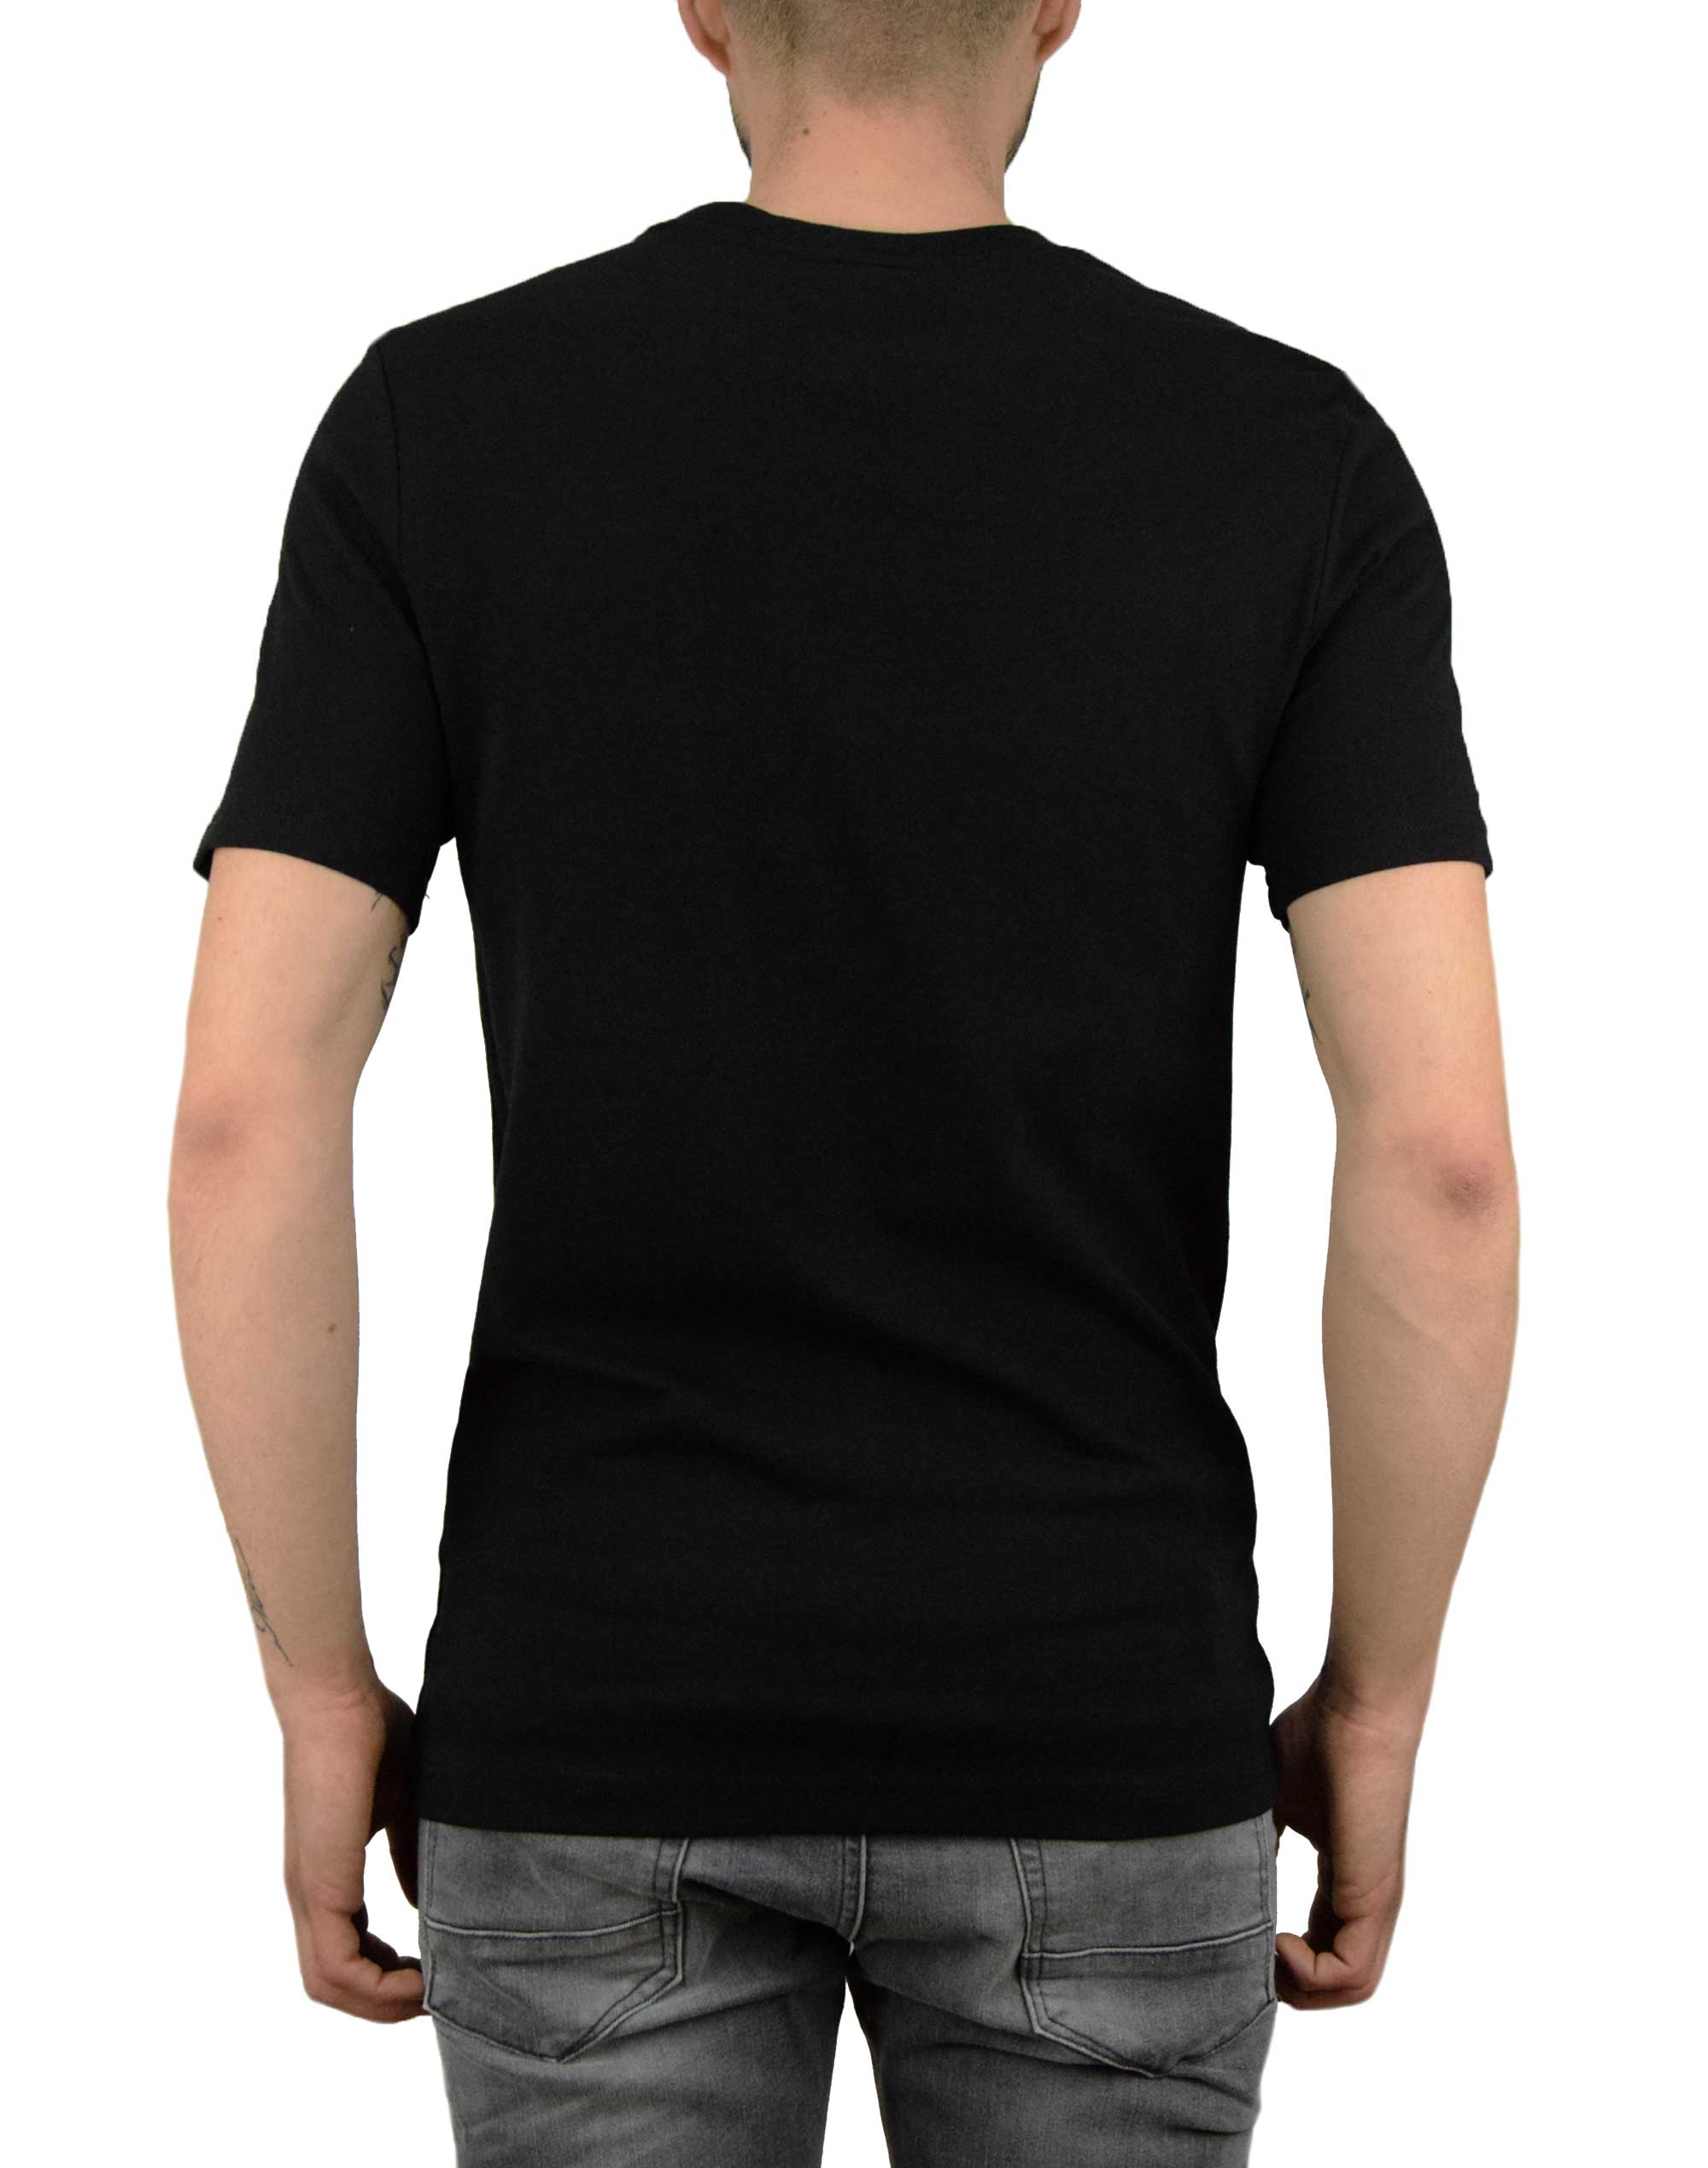 G-Star Raw Graphic 47 R T (D13342-4561-6484) Black